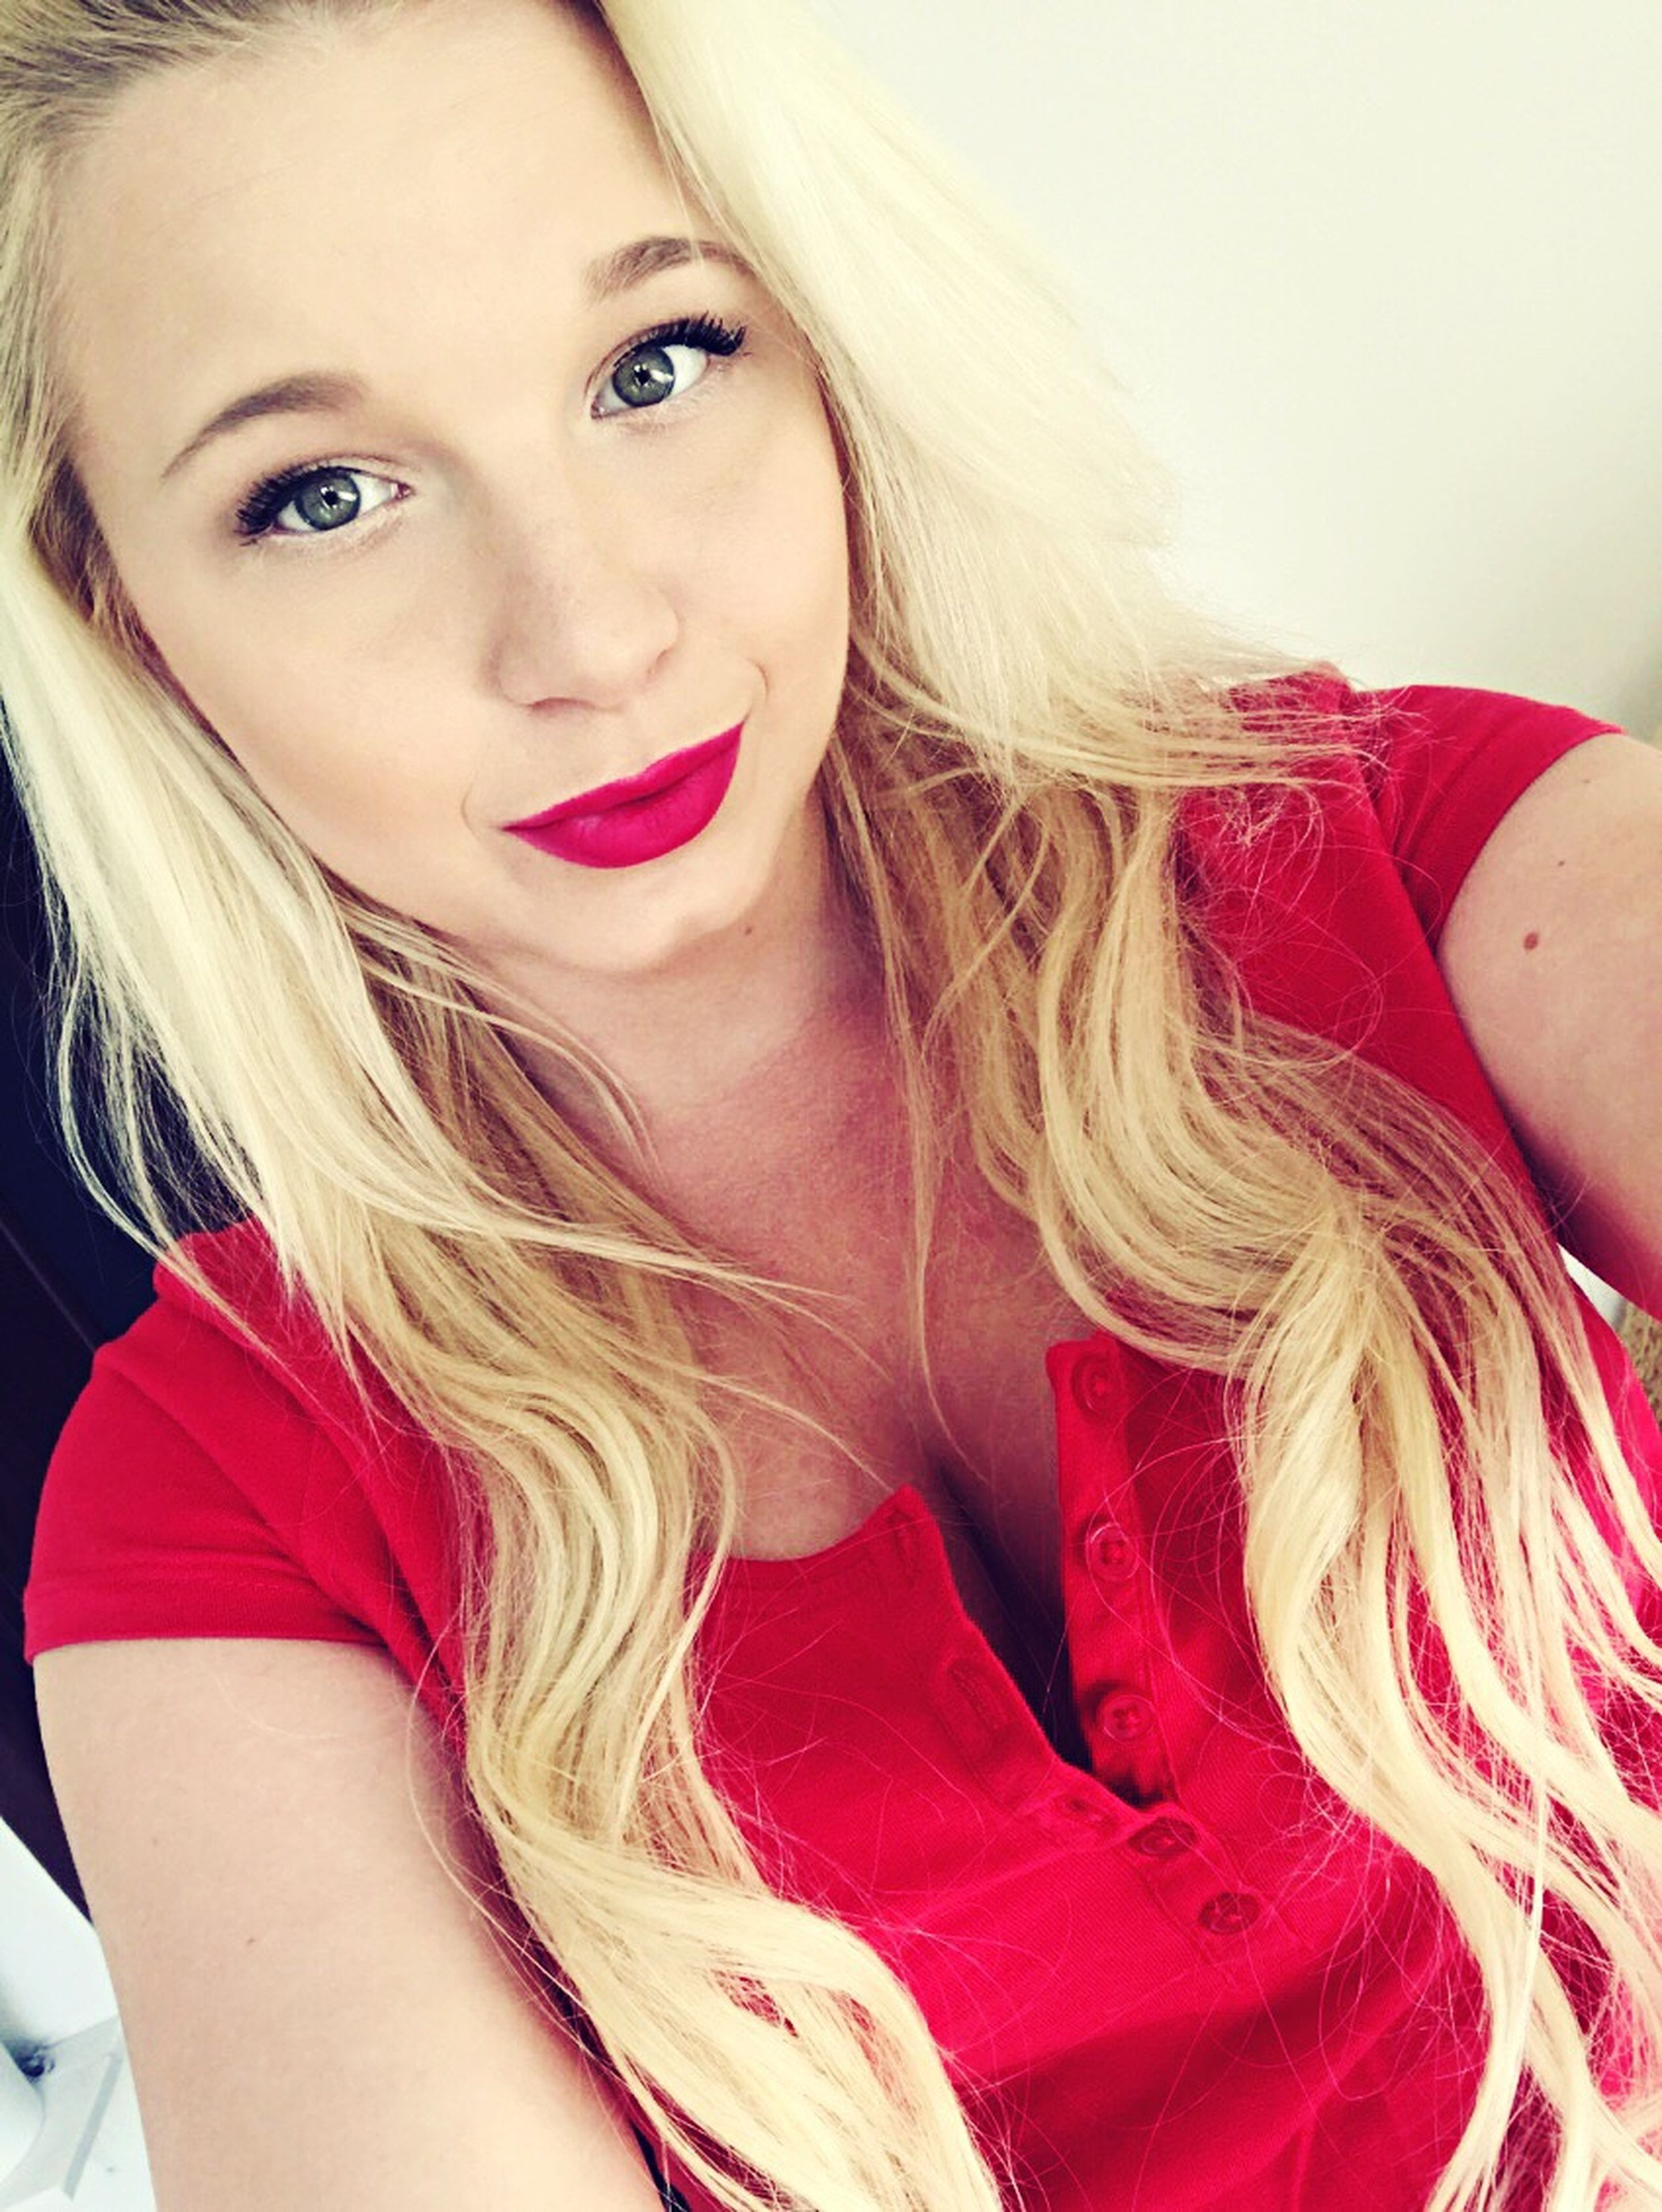 blond hair, looking at camera, portrait, young adult, real people, one person, young women, beautiful woman, long hair, red, lifestyles, beauty, indoors, close-up, day, people